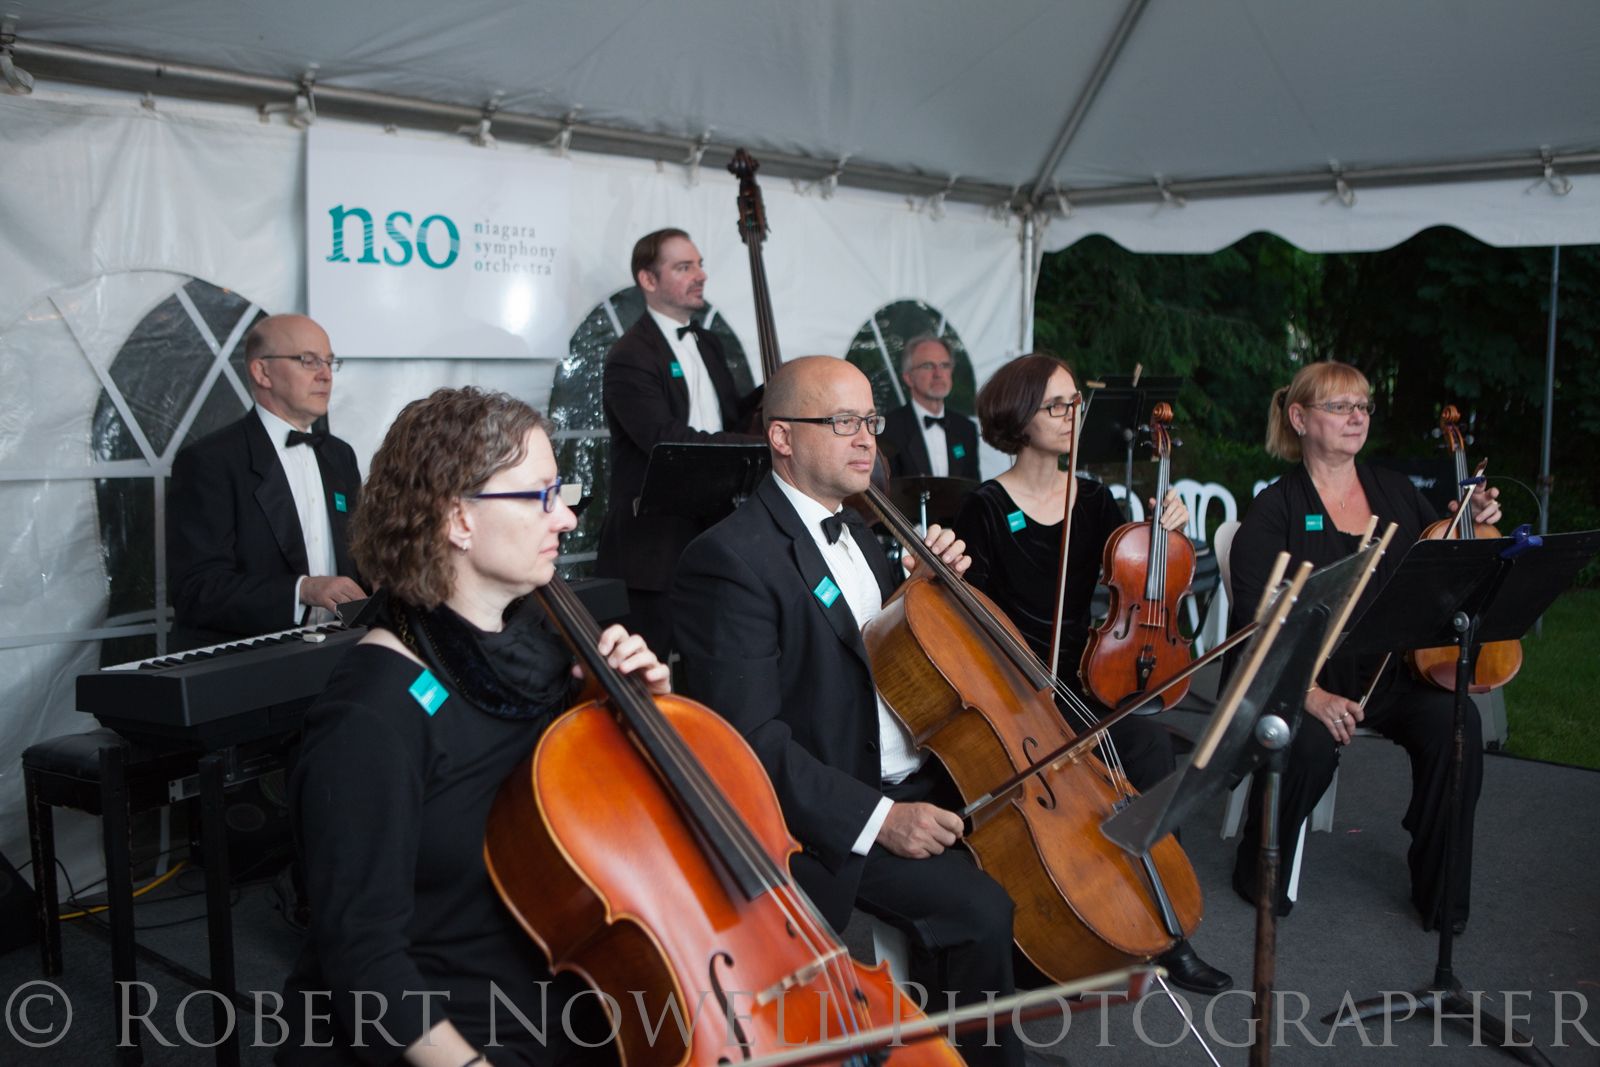 A select group of the Niagara Symphony performed some Gershwin inspired melodies.